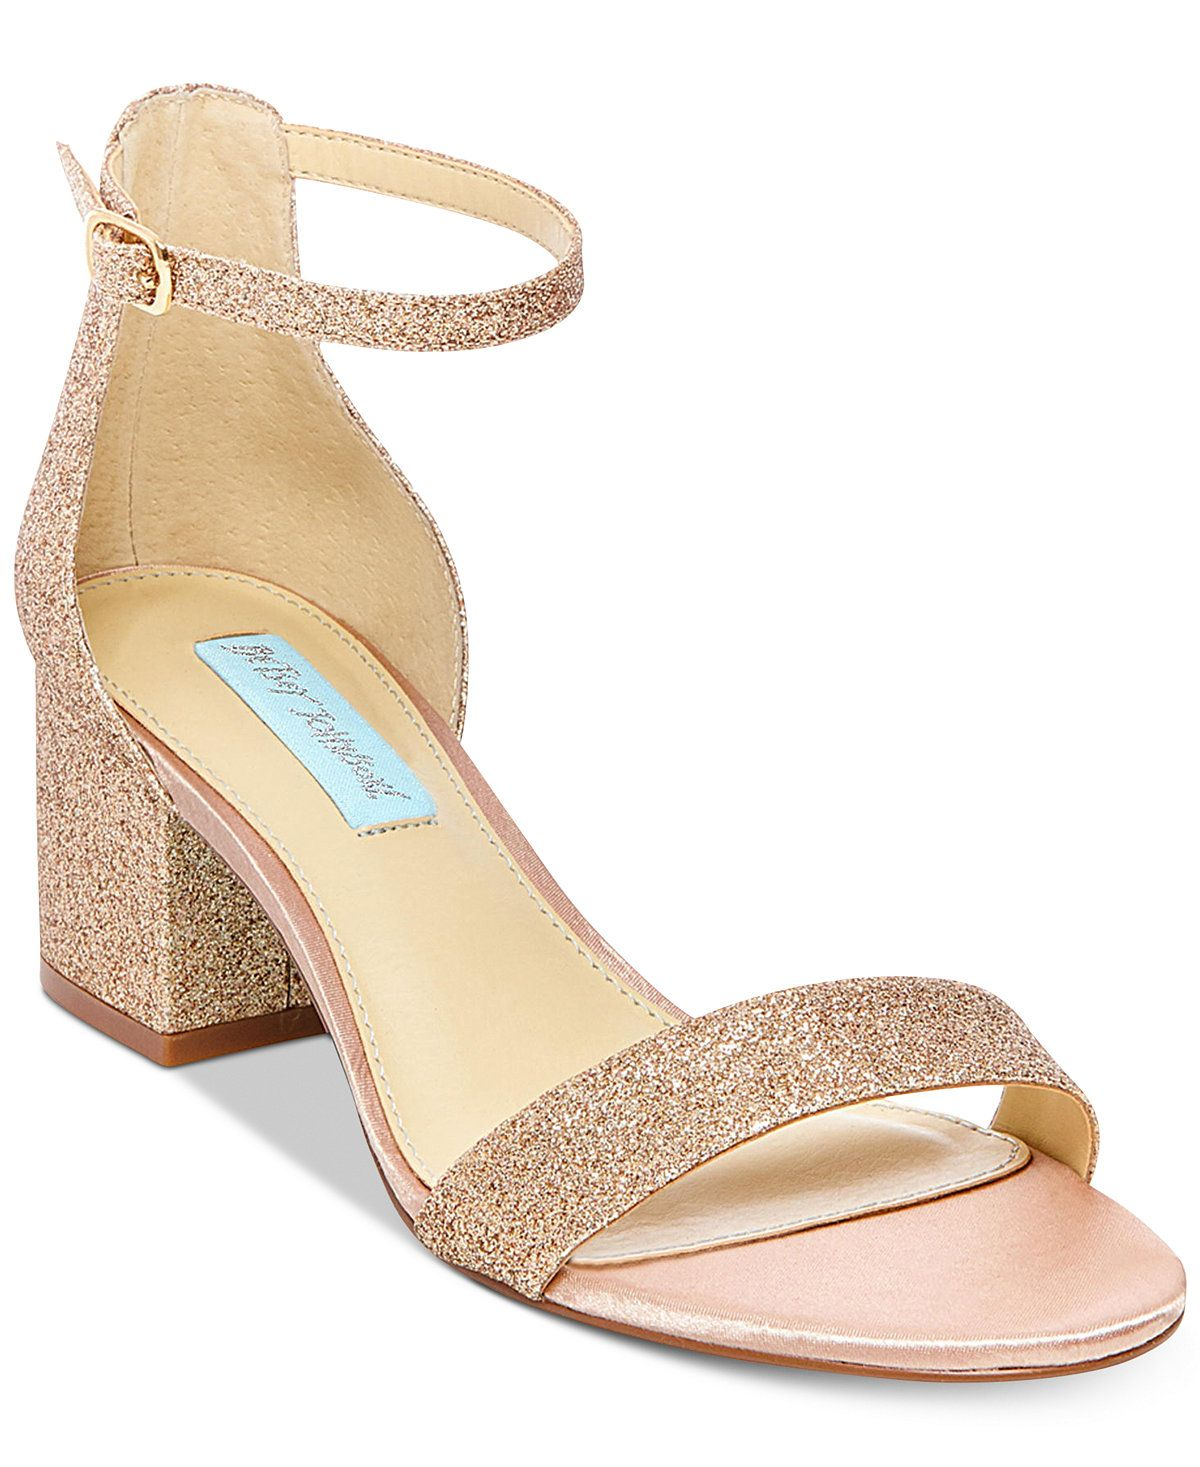 betsey johnson wedding shoes Blue By Betsey Johnson Miri Evening Sandals A Macy s Exclusive Style